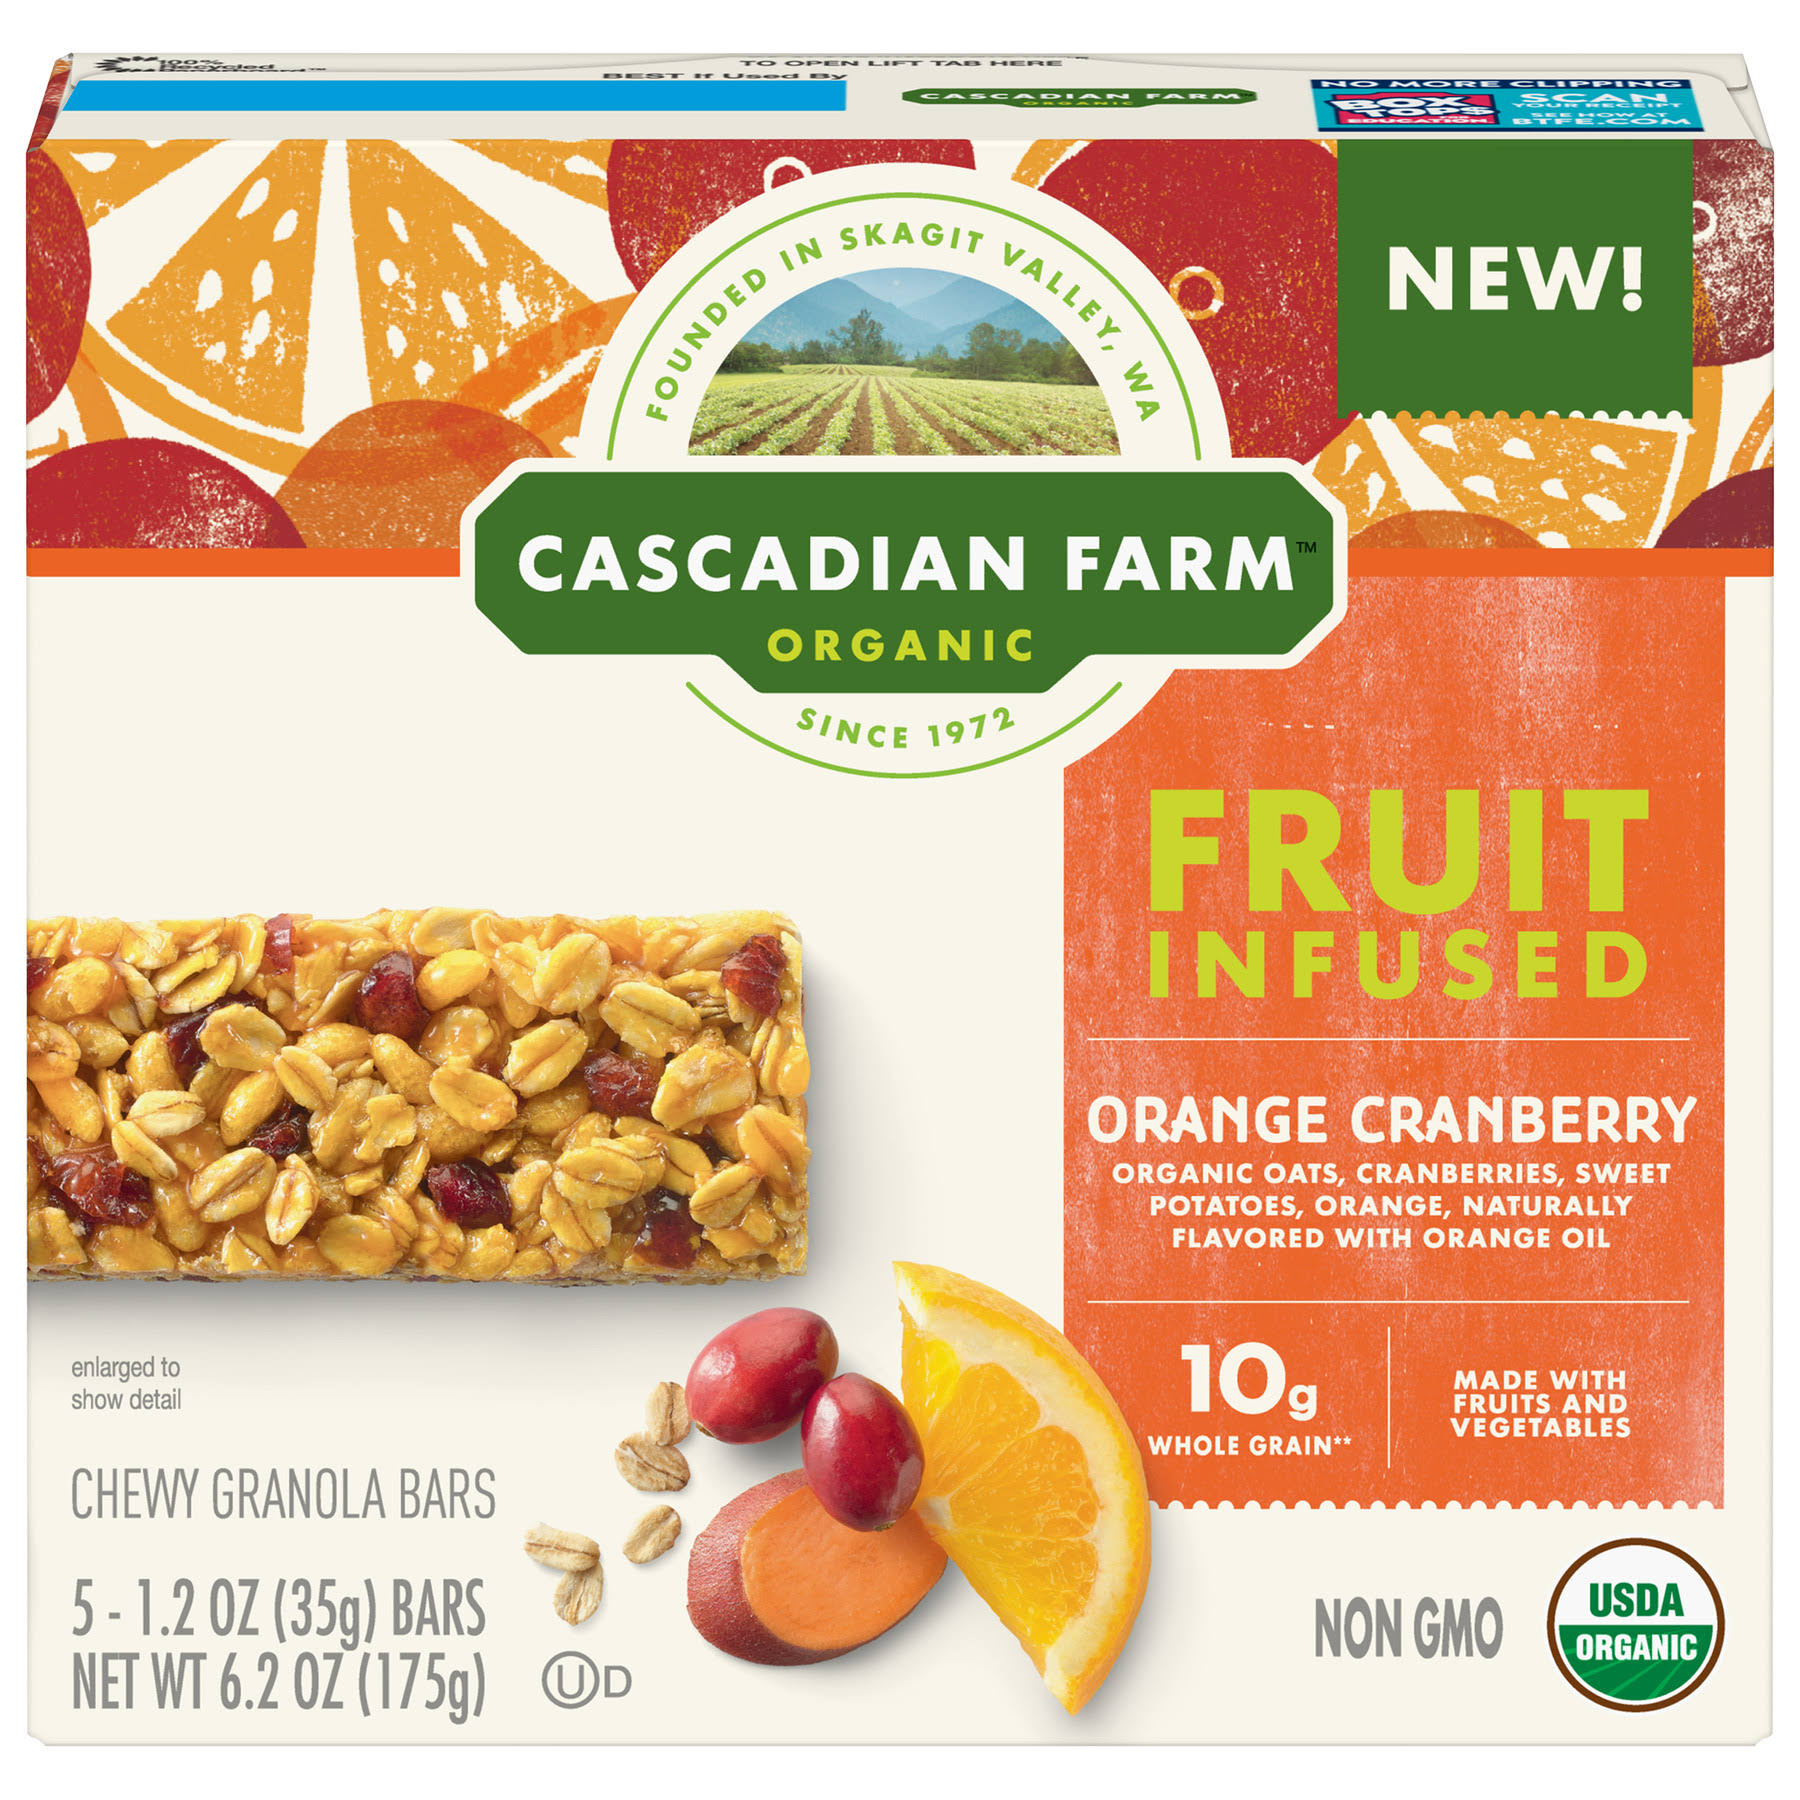 Cascadian Farm Organic Granola Bars, Chewy, Fruit Infused - 5 pack, 1.2 oz bars